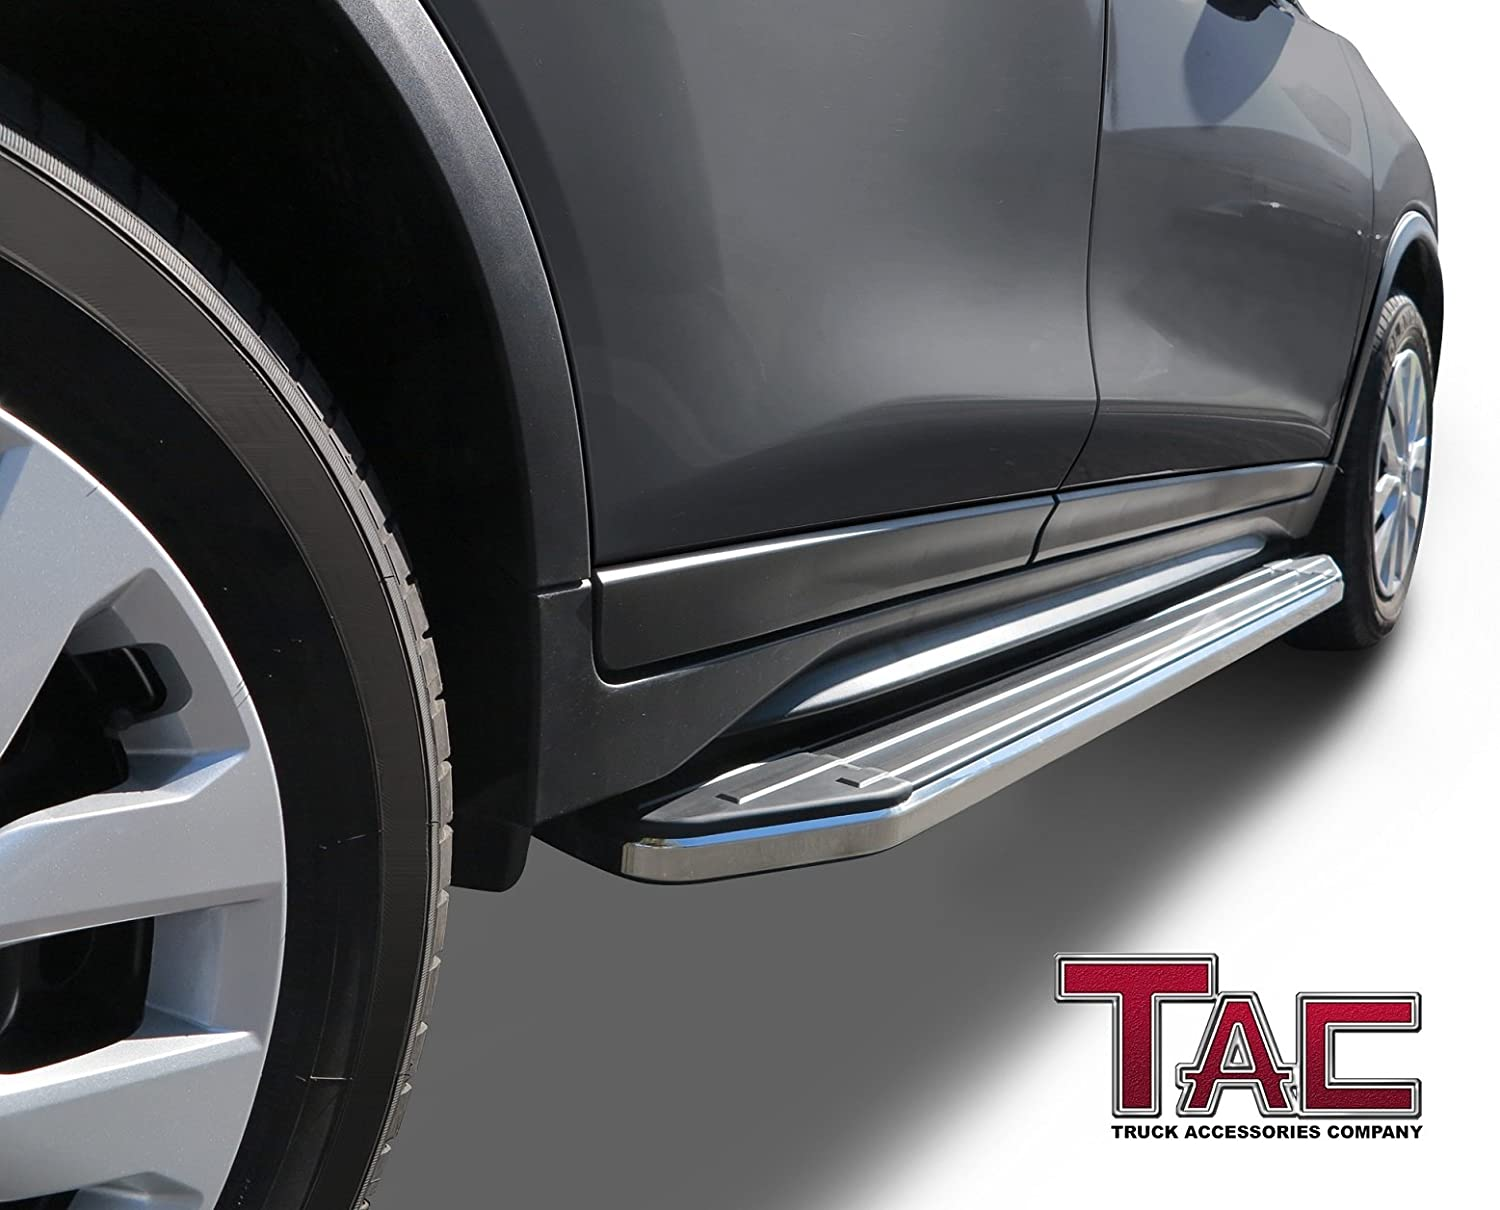 TAC Running Boards Fit 2009-2015 Honda Pilot SUV Aluminum Black Side Steps Nerf Bars Step Rails Truck Pickup Rock Panel Off Road Exterior Accessories 2 Pieces Running Boards